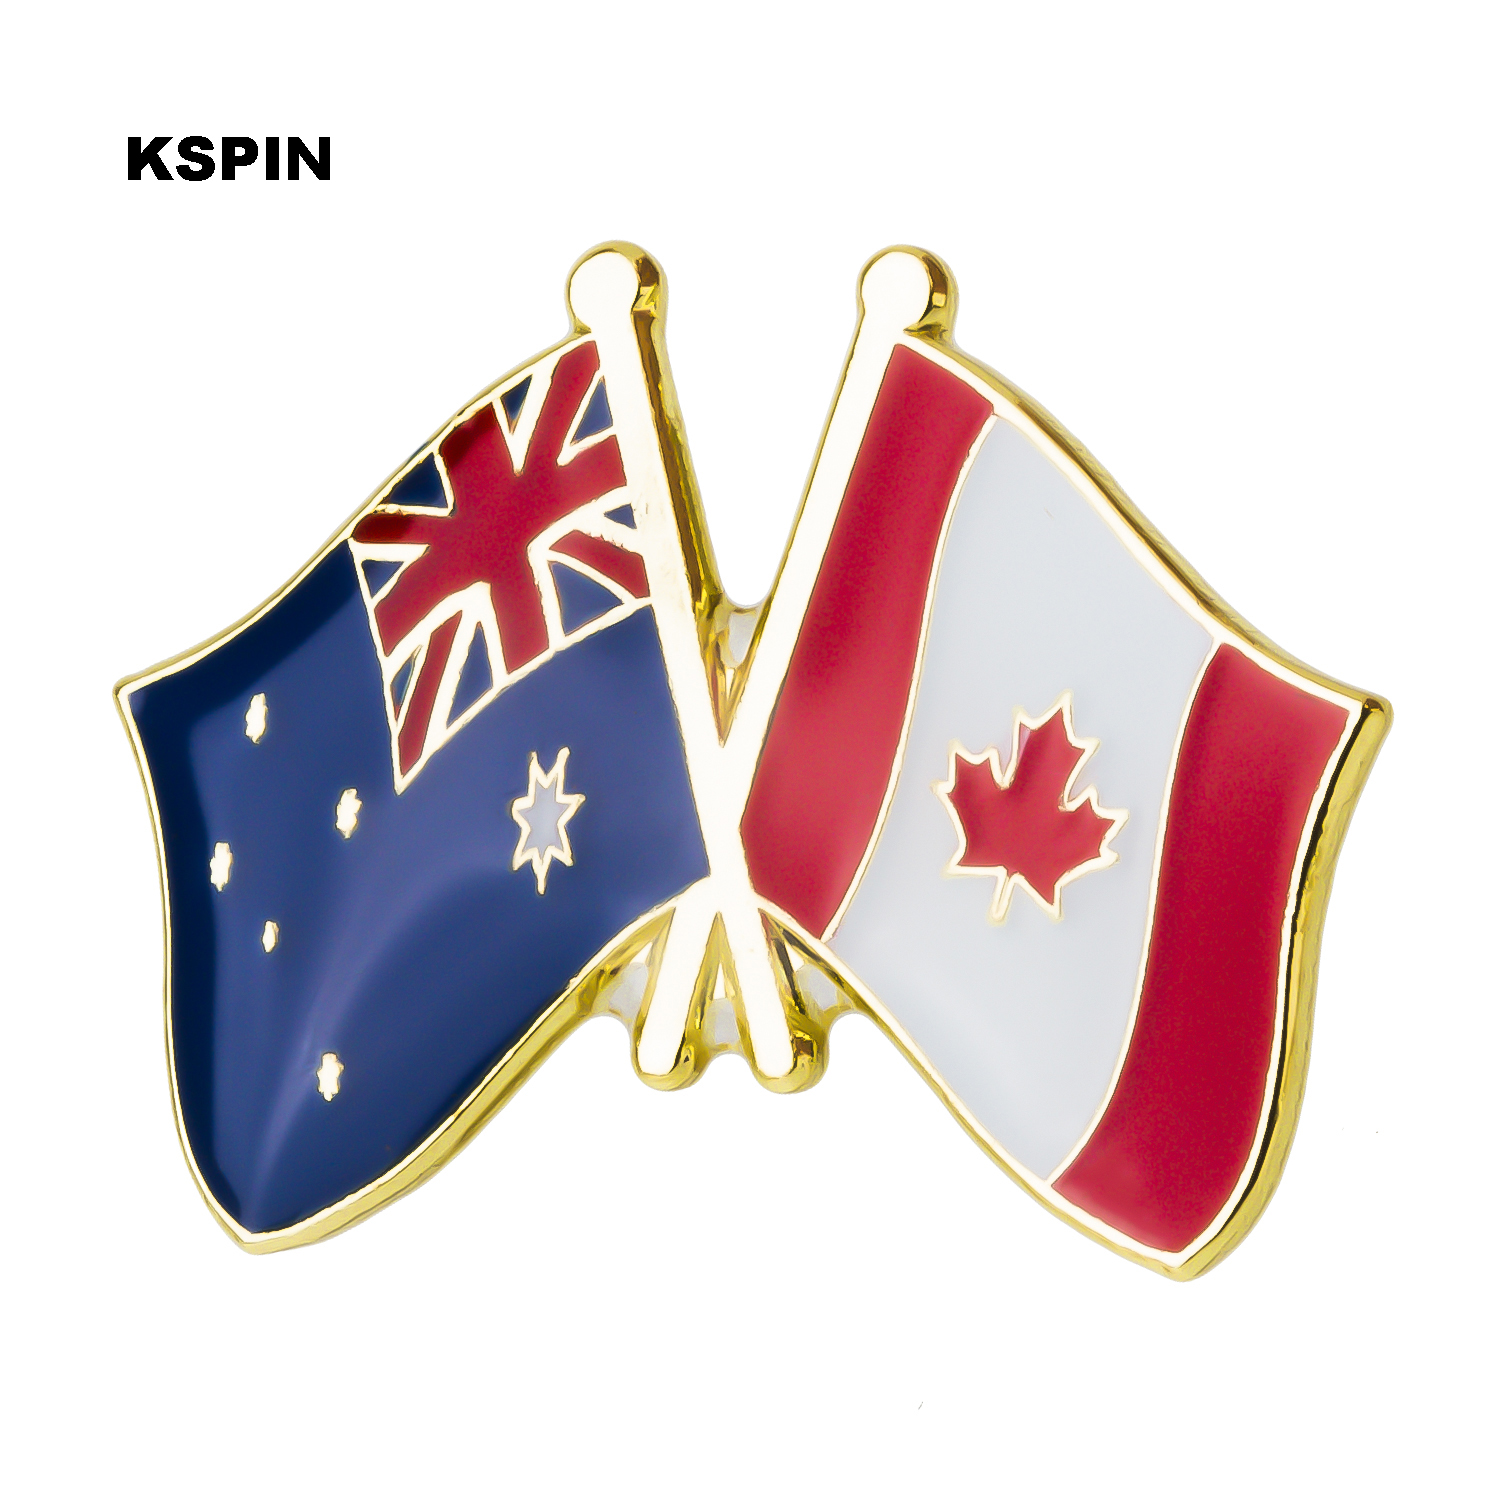 Metal Badge Australia Canada Friendship Flag Label Pin Badges Icon Bag Decoration Buttons Brooch For Clothes Good Companions For Children As Well As Adults Arts,crafts & Sewing Apparel Sewing & Fabric